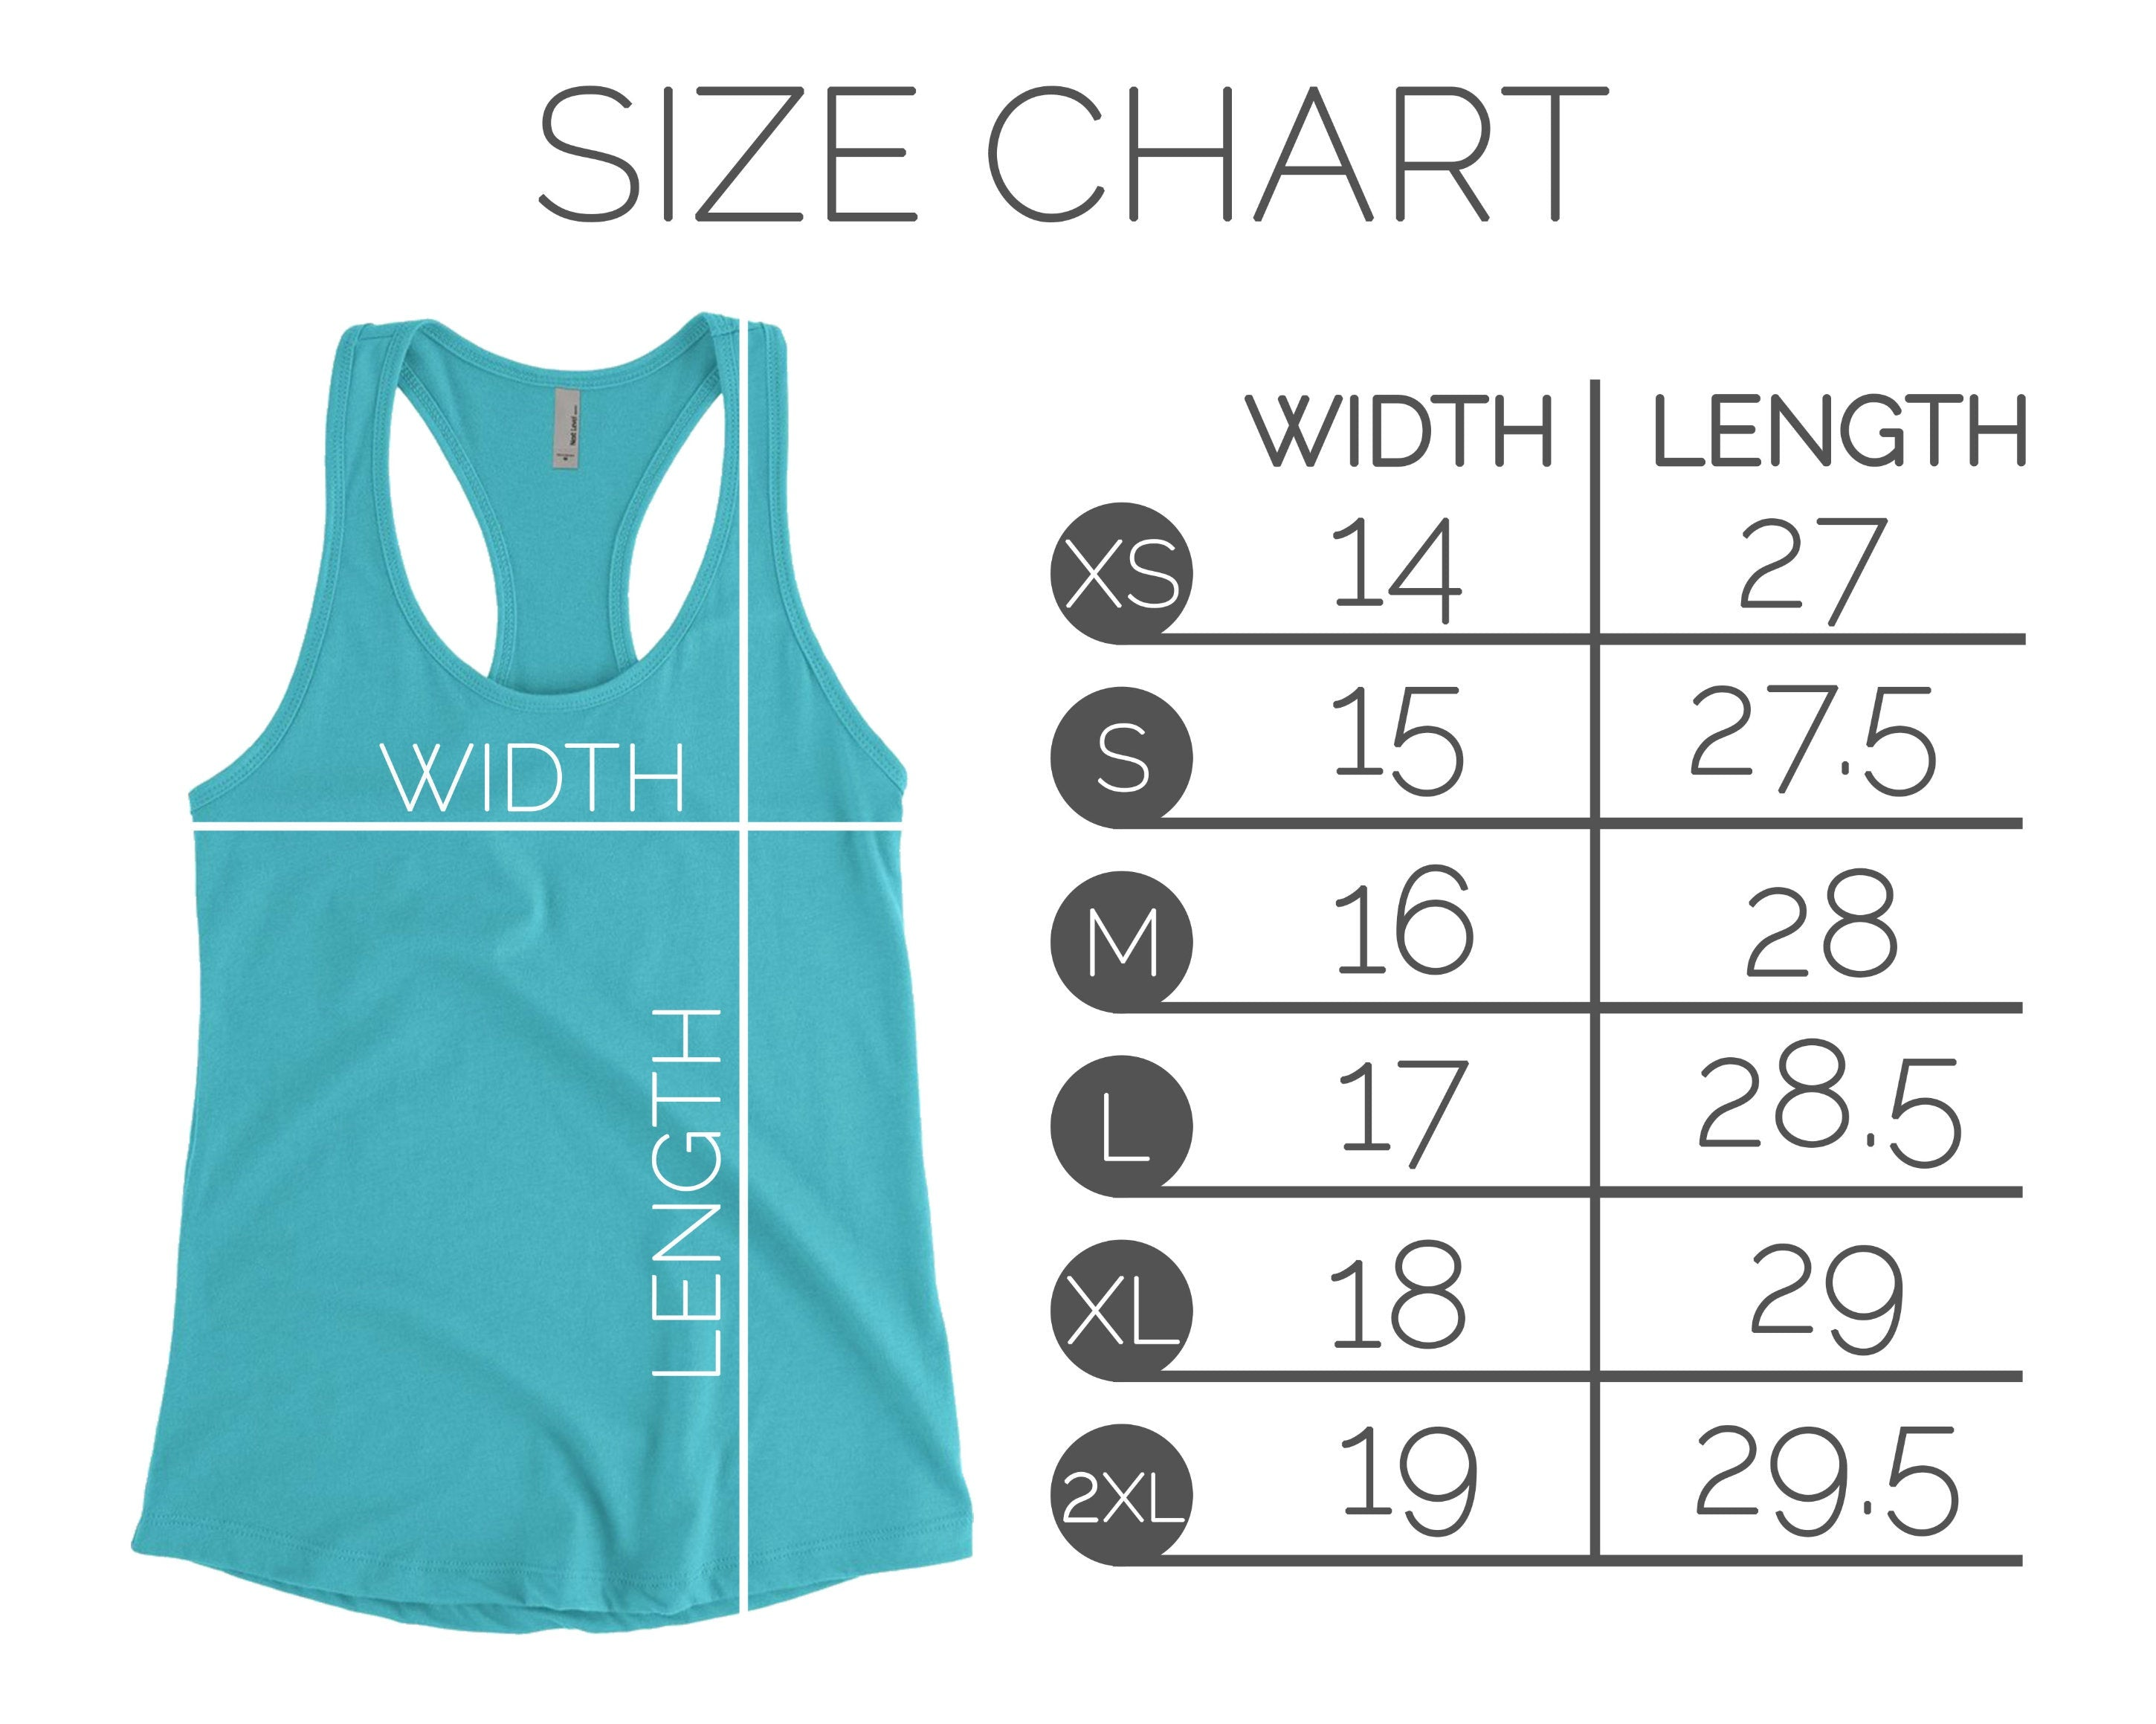 Vacay Mode Women's Fit Racerback Tank